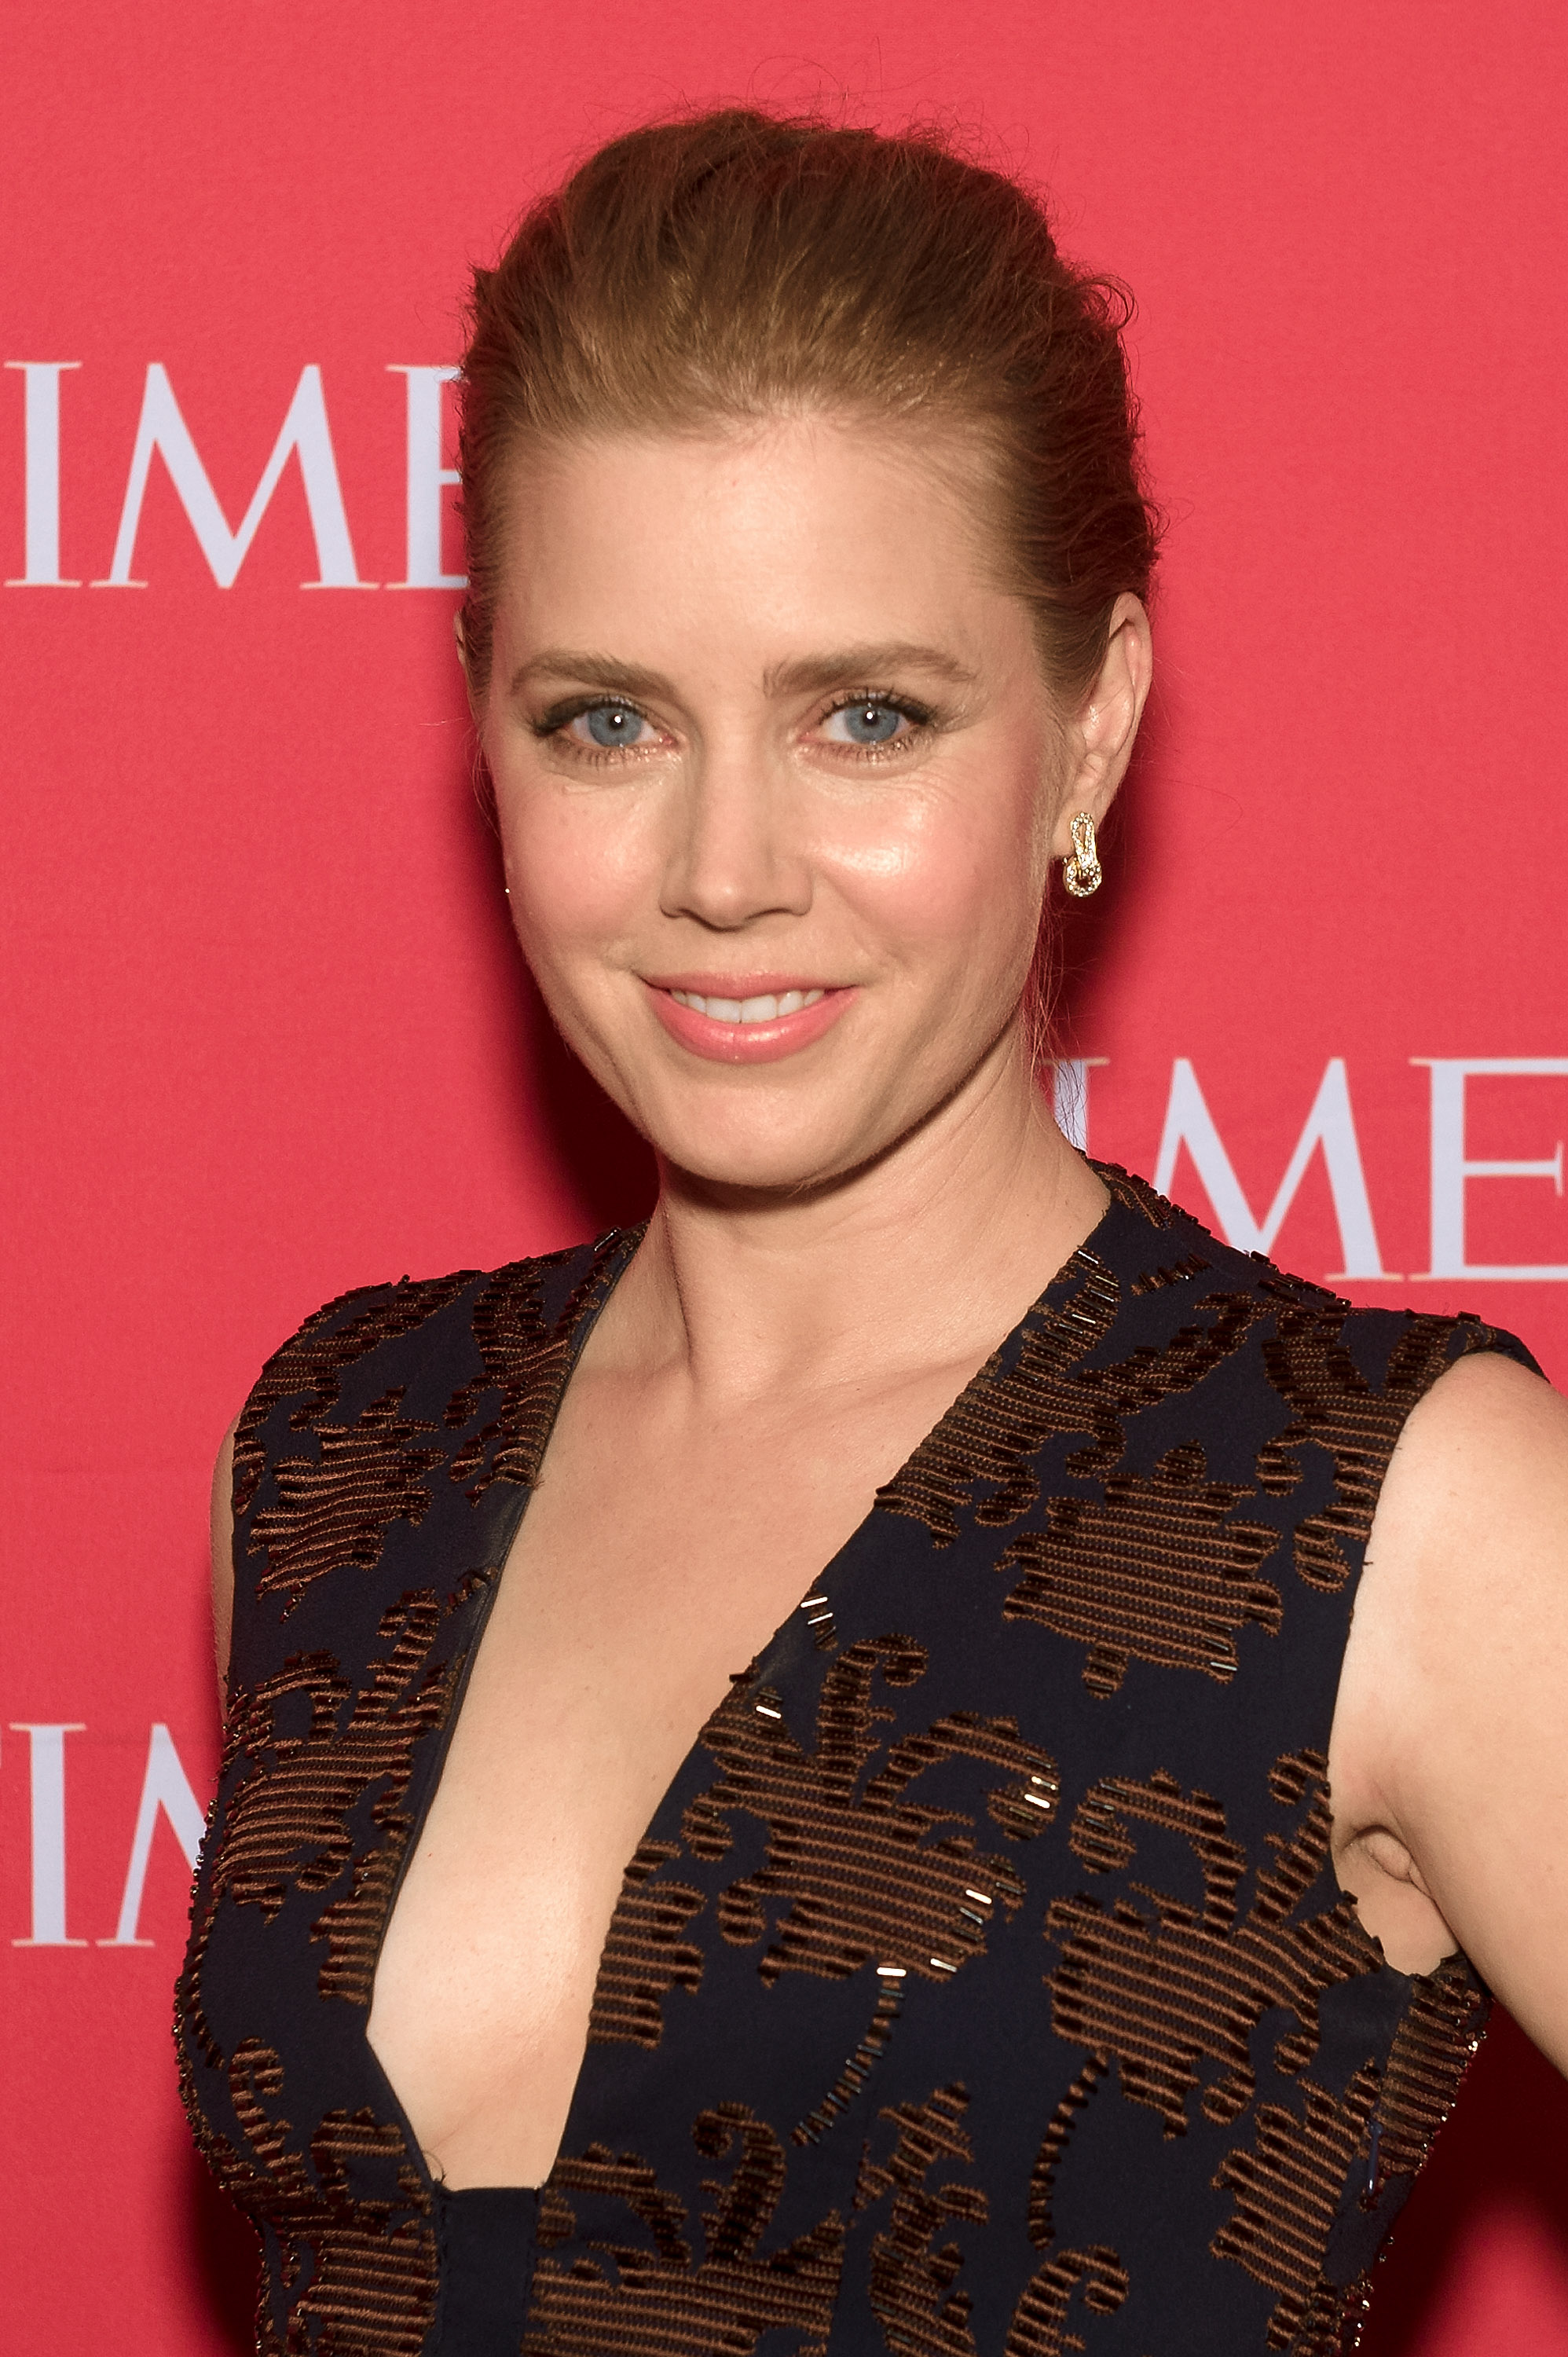 Amy Adams attends the 2014 Time 100 Gala on April 29 in New York City.